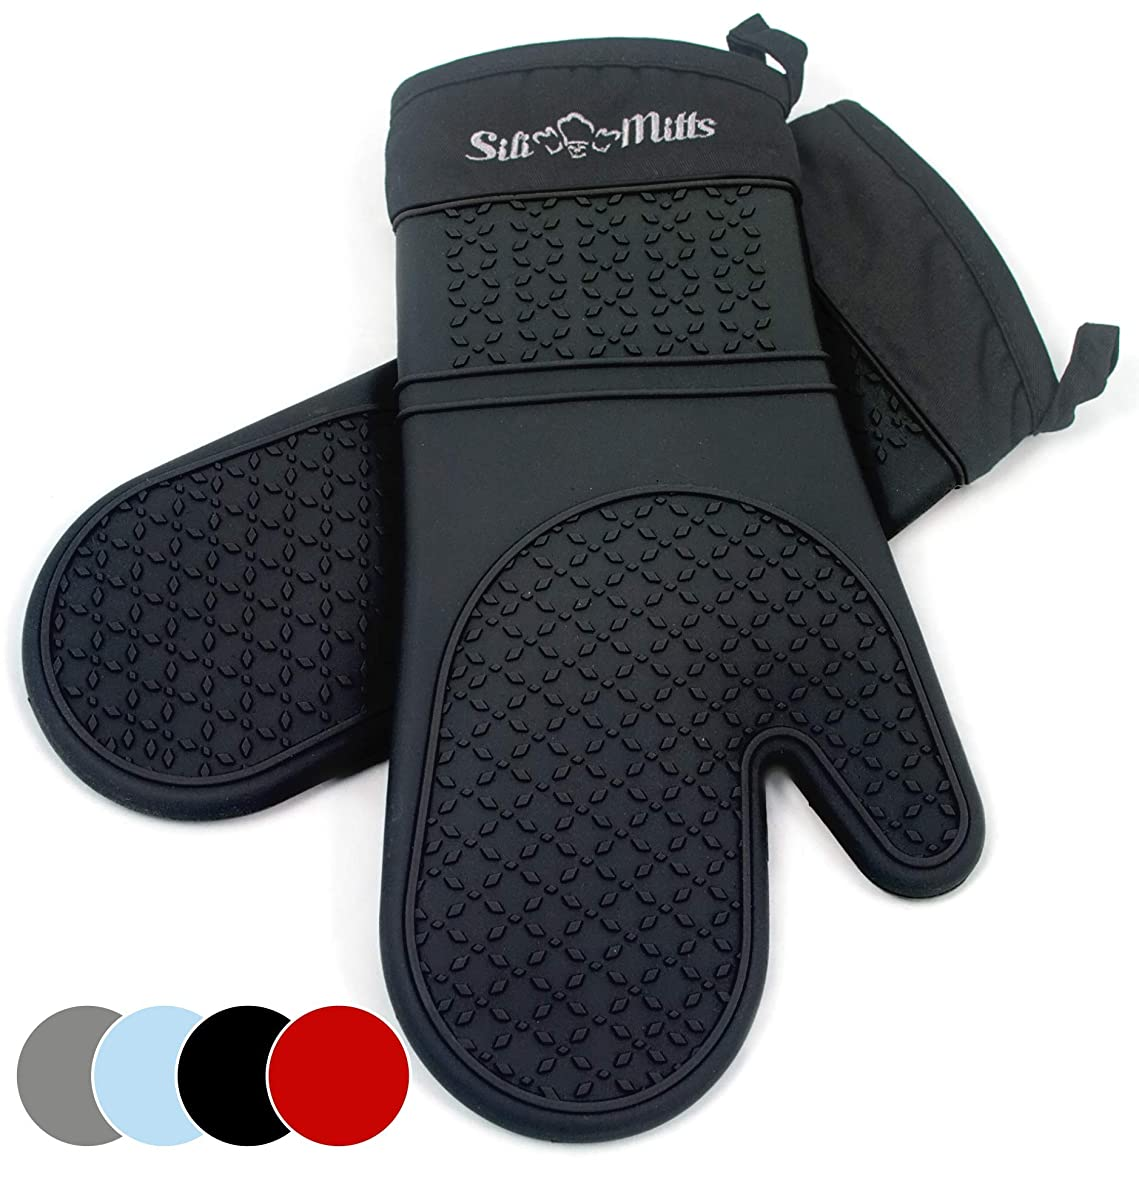 Black Silicone Oven Mitts - 1 Pair of Extra Long Professional Heat Resistant Pot Holder & Baking Gloves - Food Safe, BPA Free FDA Approved With Soft Inner Lining